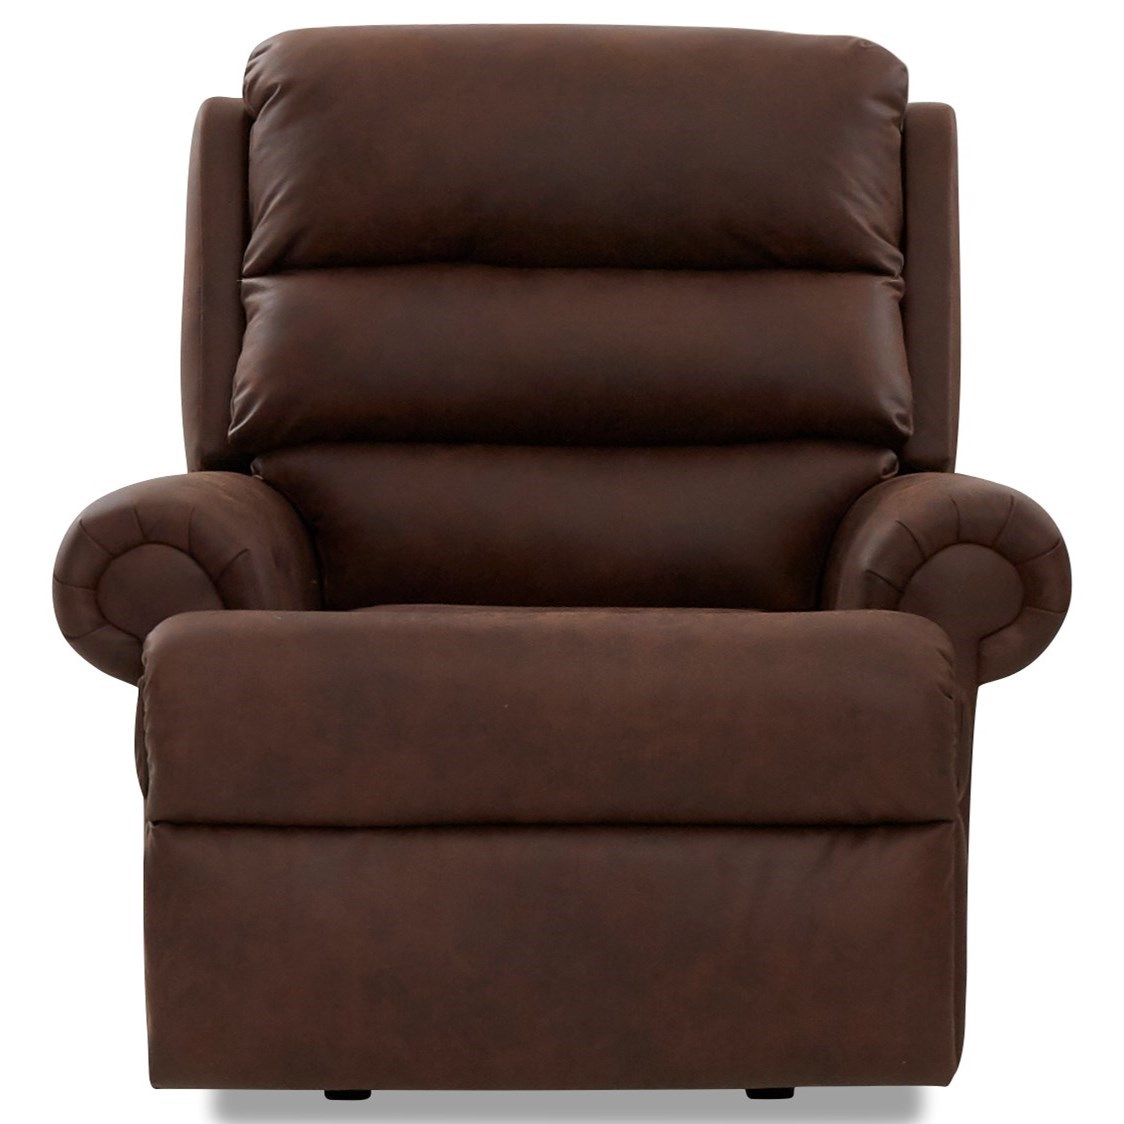 Maximus Power Reclining Chair by Klaussner at Northeast Factory Direct